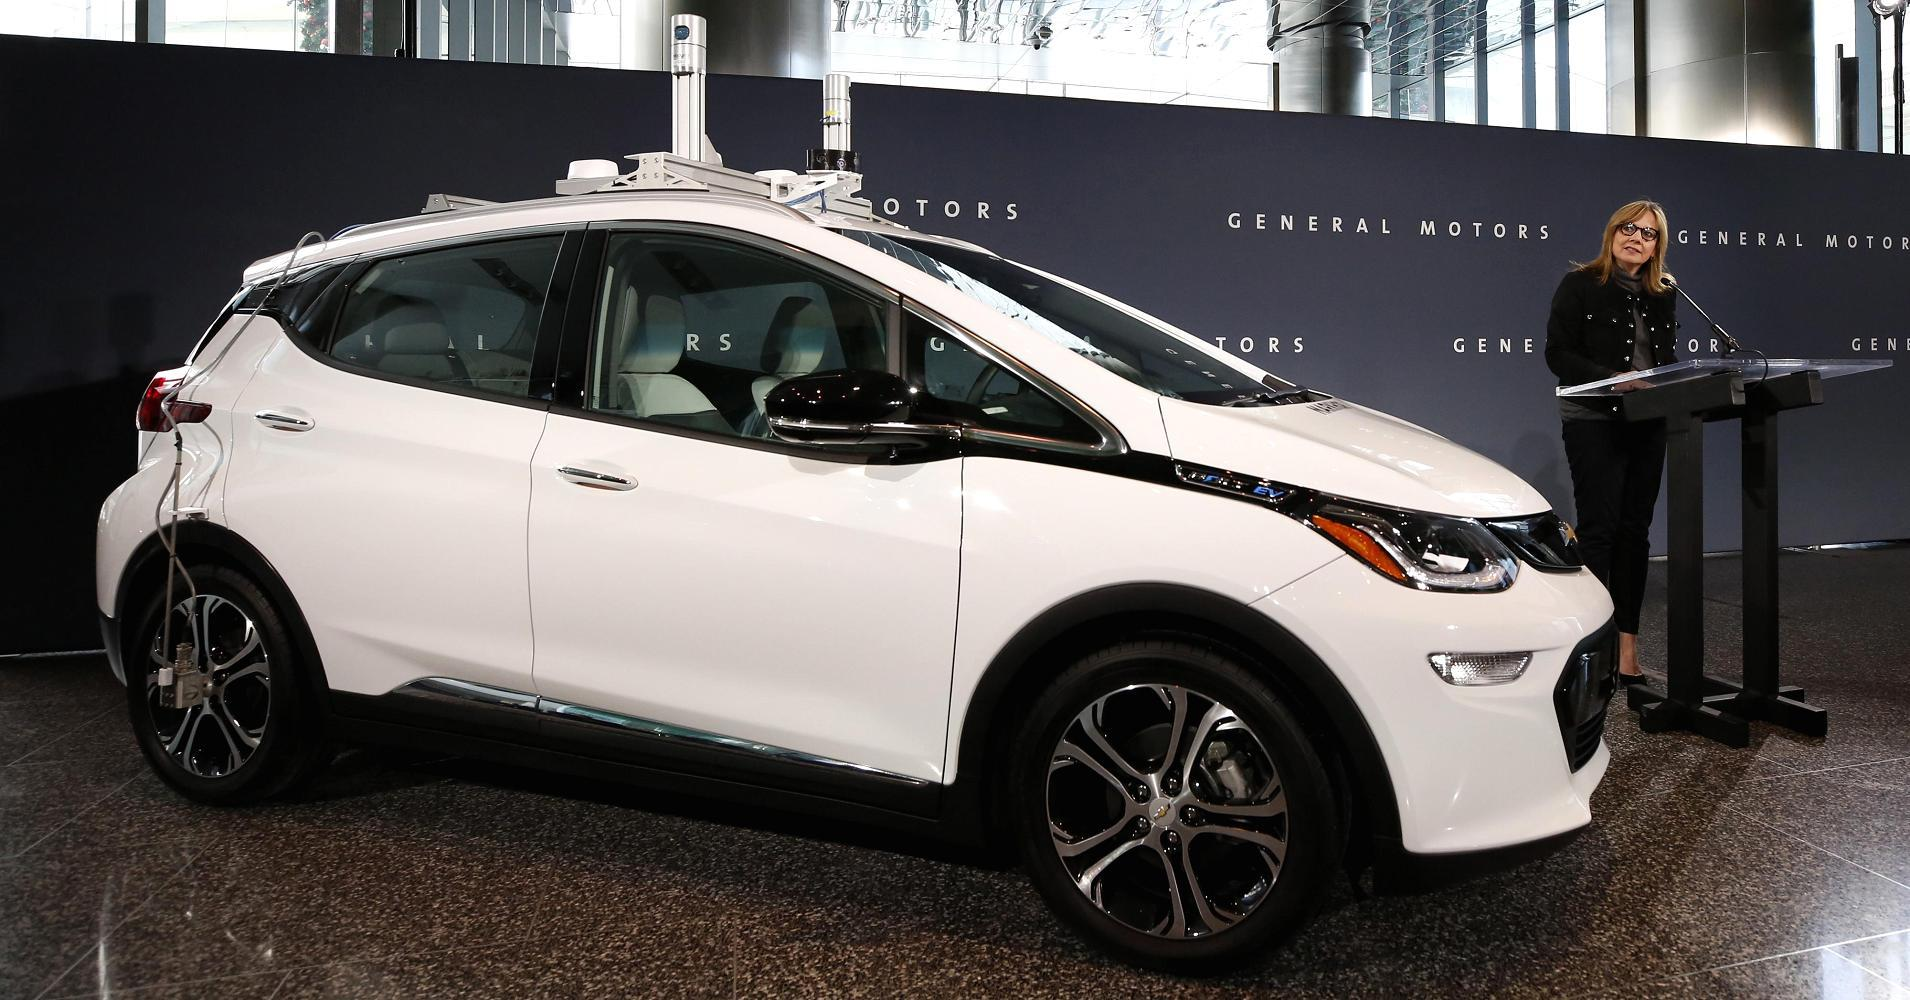 General motors to ramp up electric vehicle plans 20 new for General motors new cars